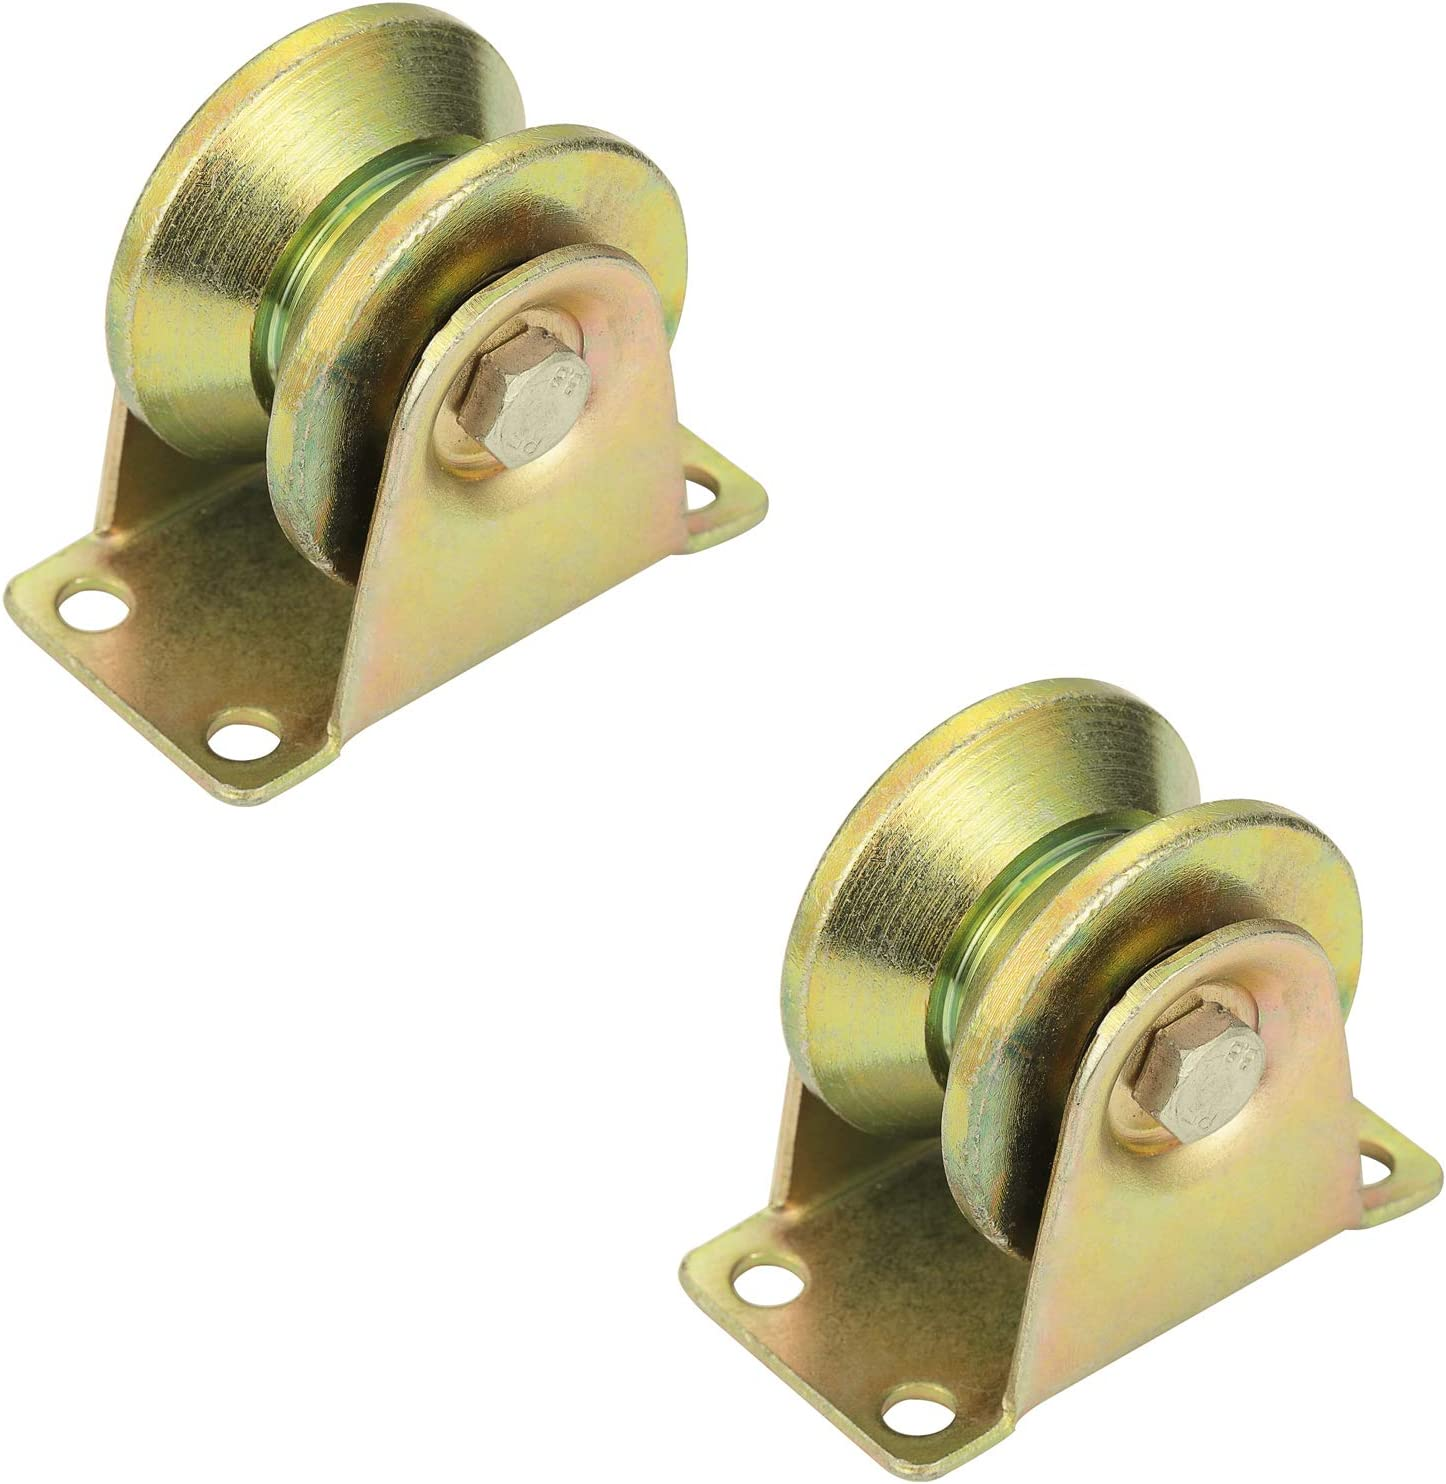 """2"""" V Groove Rigid Caster Wheel for Industrial Machines Carts,Sliding Gate,Groove Wheel Heavy Duty Rigid Caster with Bracket, Loading Capacity 660 lbs, Pack of 2"""